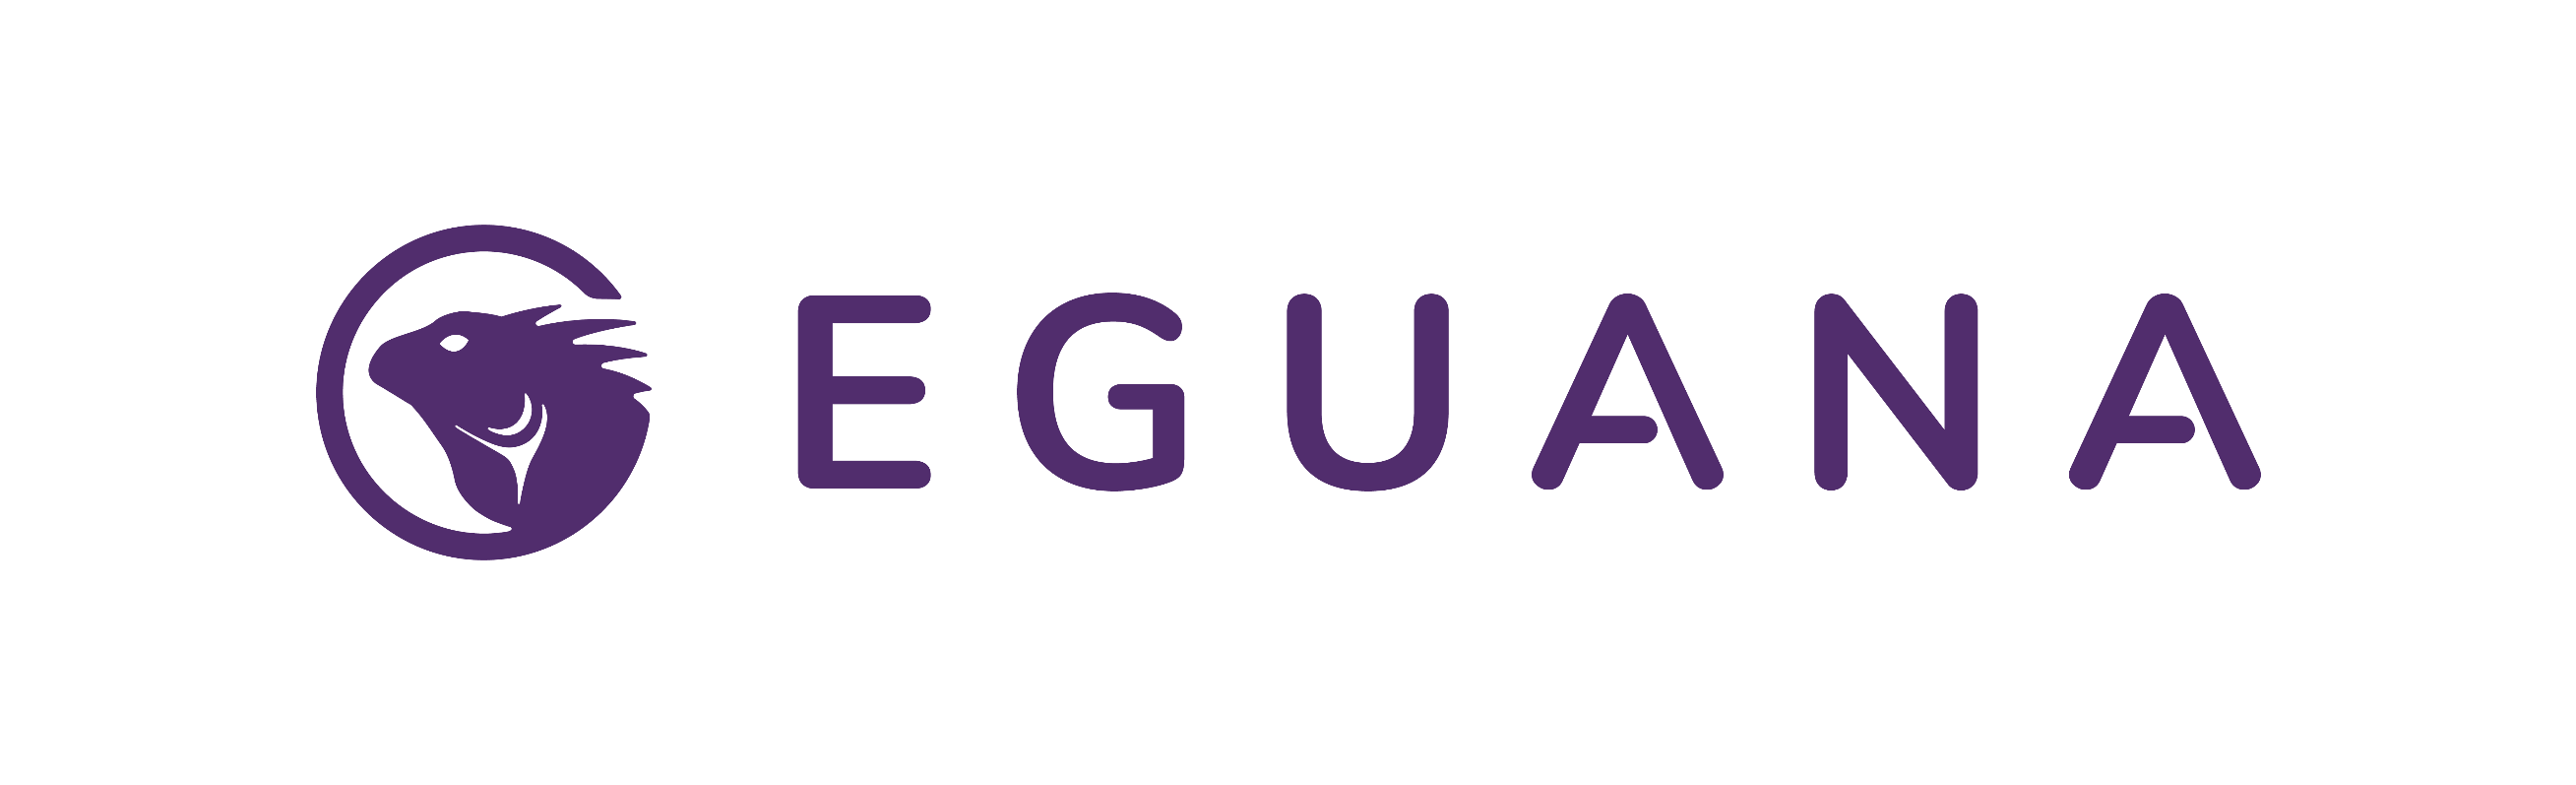 Eguana Closes $1.15 Million Upsized Brokered Private Placement